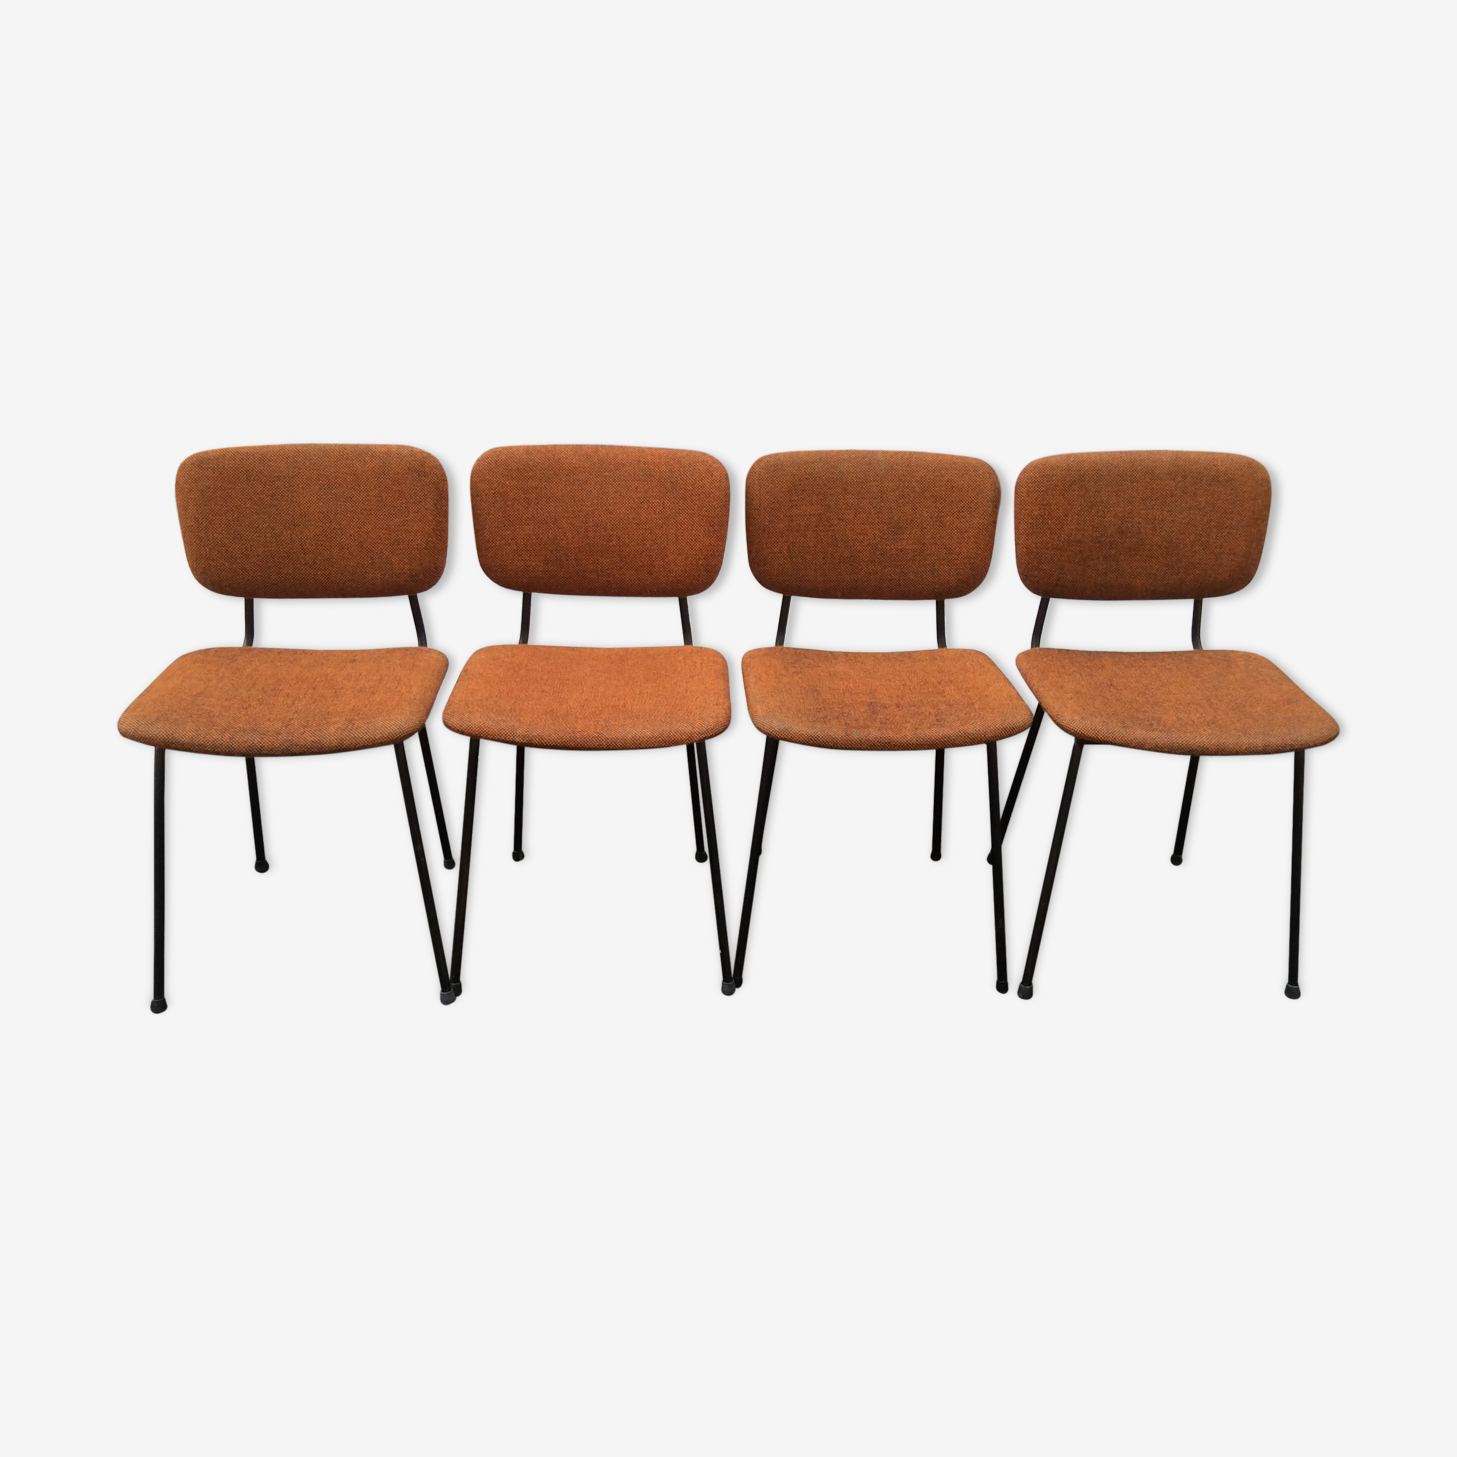 Vintage chairs with metal and fabric structure